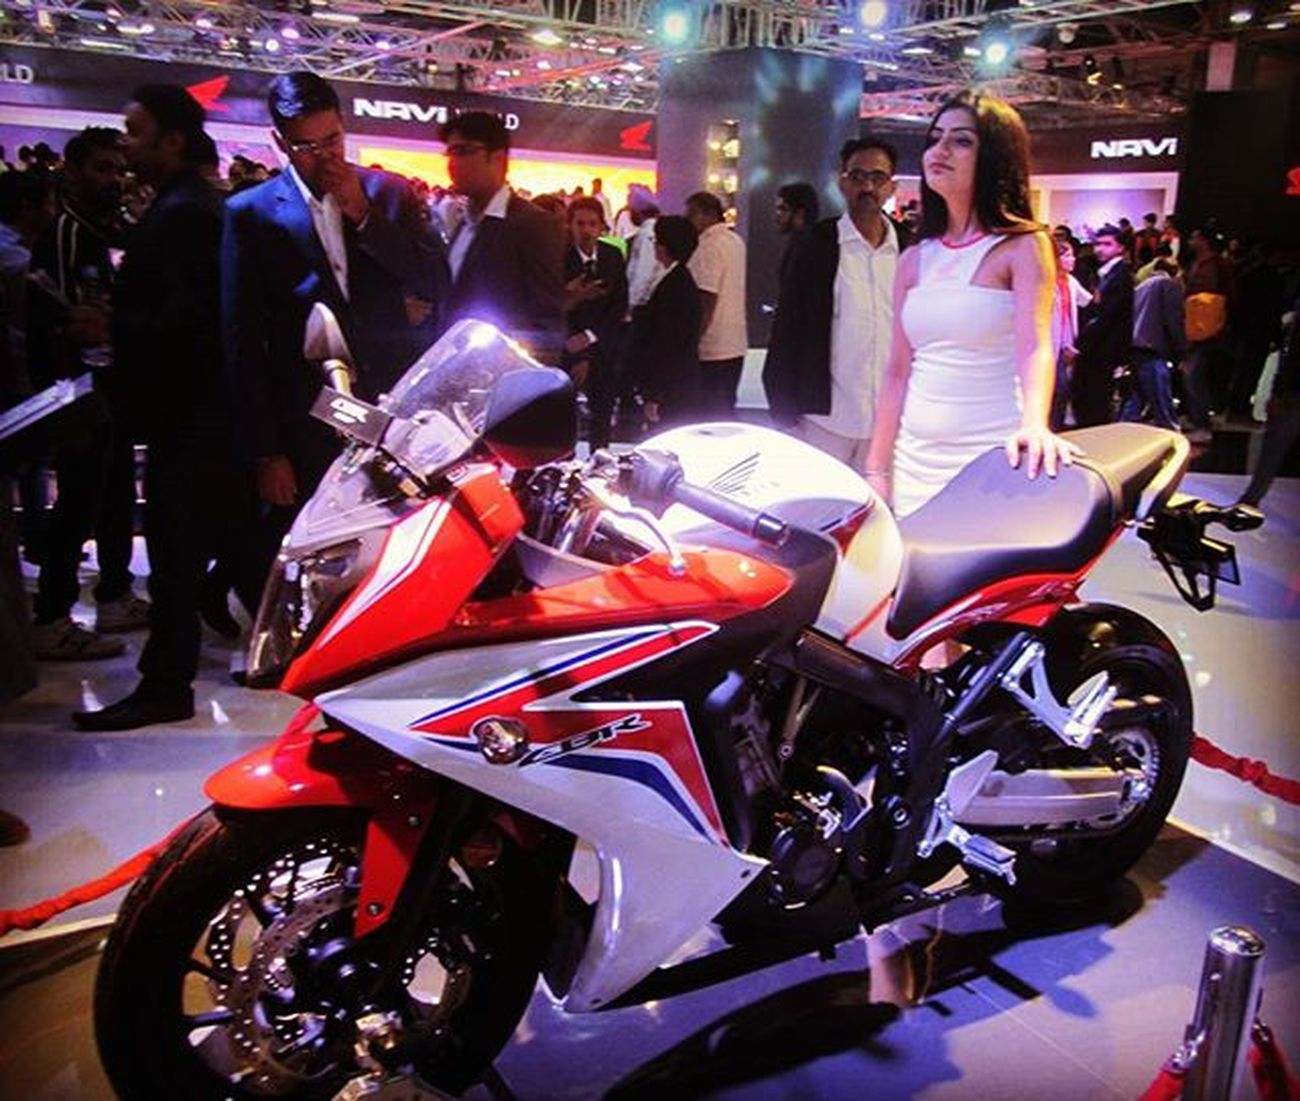 CBR 650F having an inline-4 cylinder engine which gives it a top speed of 222 kmph... Honda Hondacbr Hondacbr650f Performance InstaBikes Instapic Superbike SpeedKills Speed Speedy Picoftheday Photooftheday Vscocamphotos VSCOPH Vscocam VSCO Vscogood Vscogram Vscobikes Powerandspeed Beautyinthebeast DelhiGram Streetsofindia Greaternoida Indianroads oyemyclick _ _soi_ _soi _soidelhi